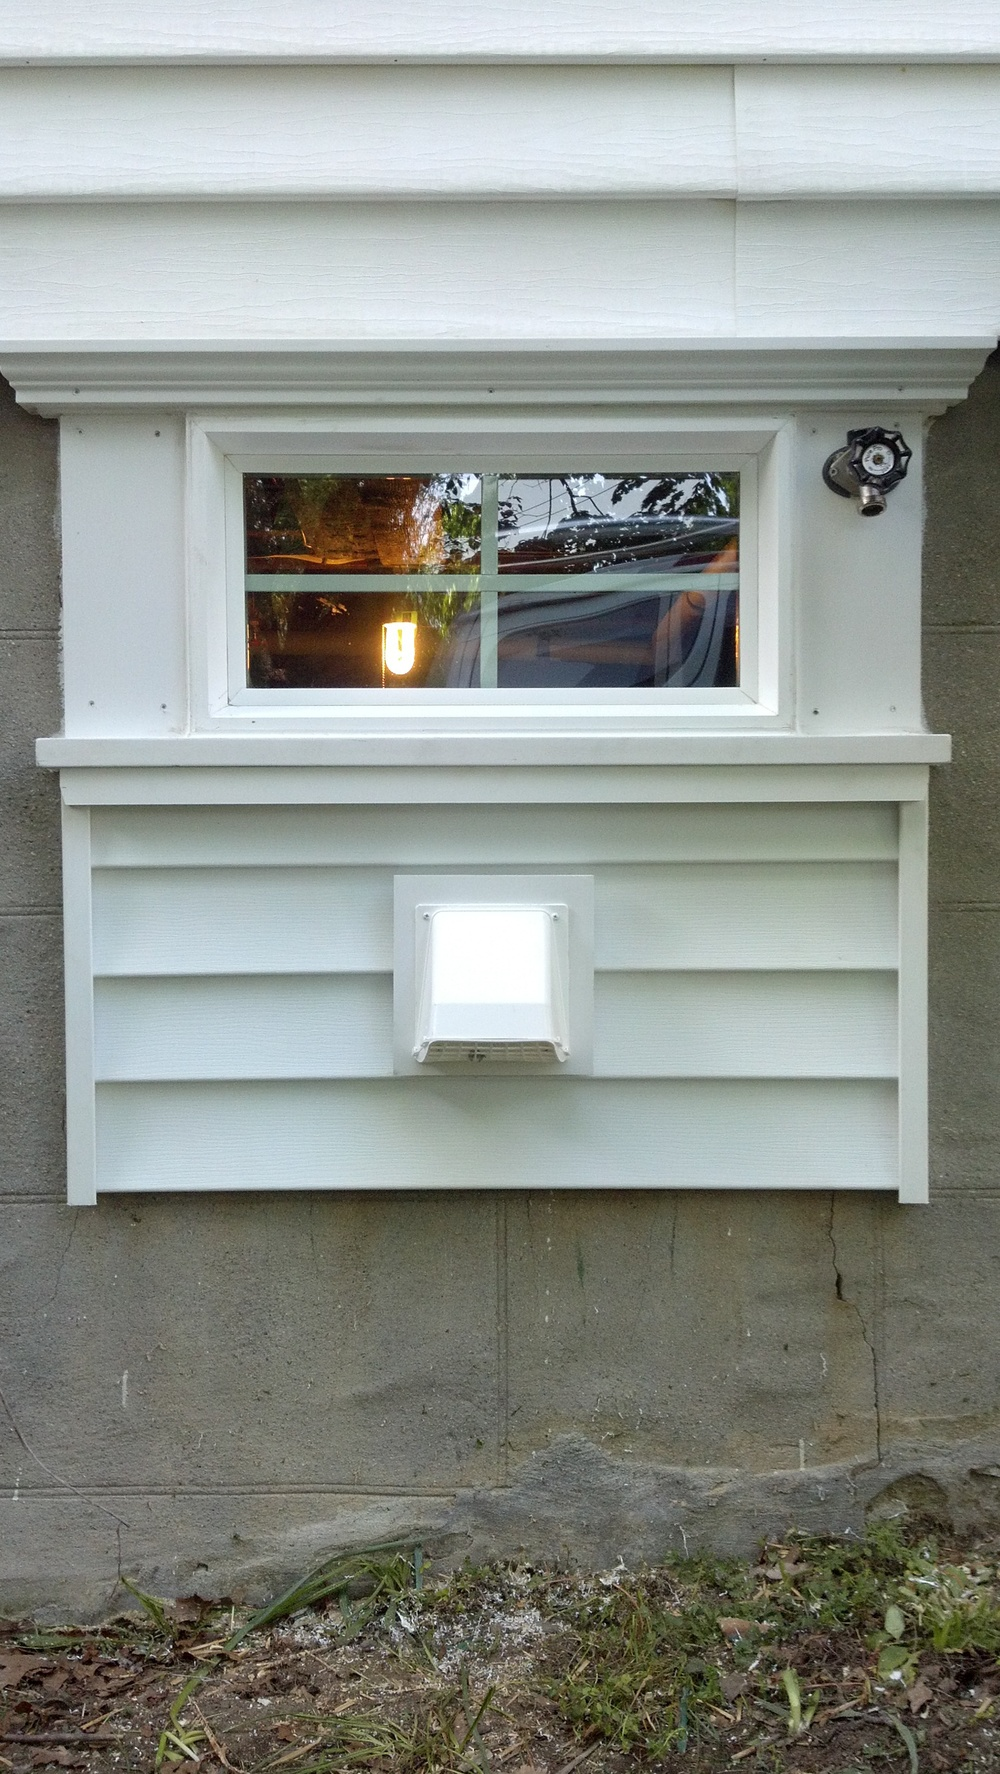 Basement Laundry Window Exhaust